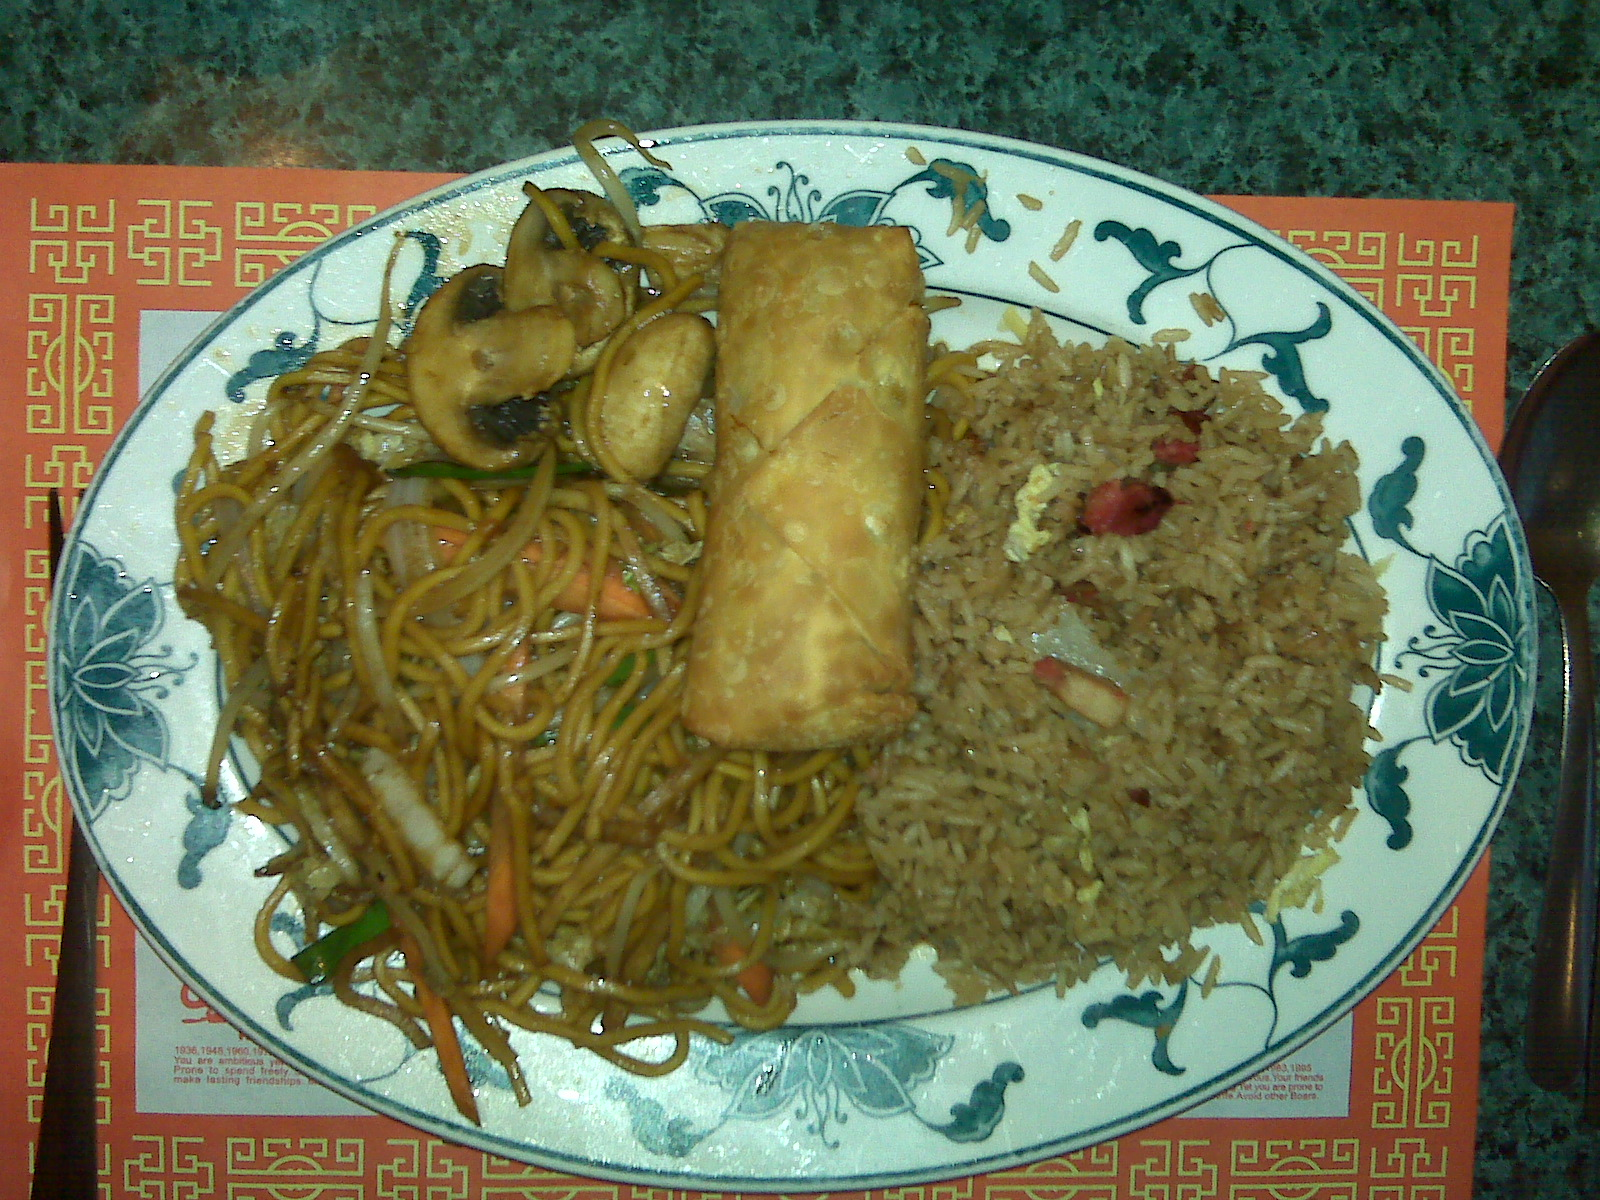 Golden Palace, Milford NH :: Veggie Lo Mien, Pork Fried Rice, Egg roll and a  Roy Rogers!